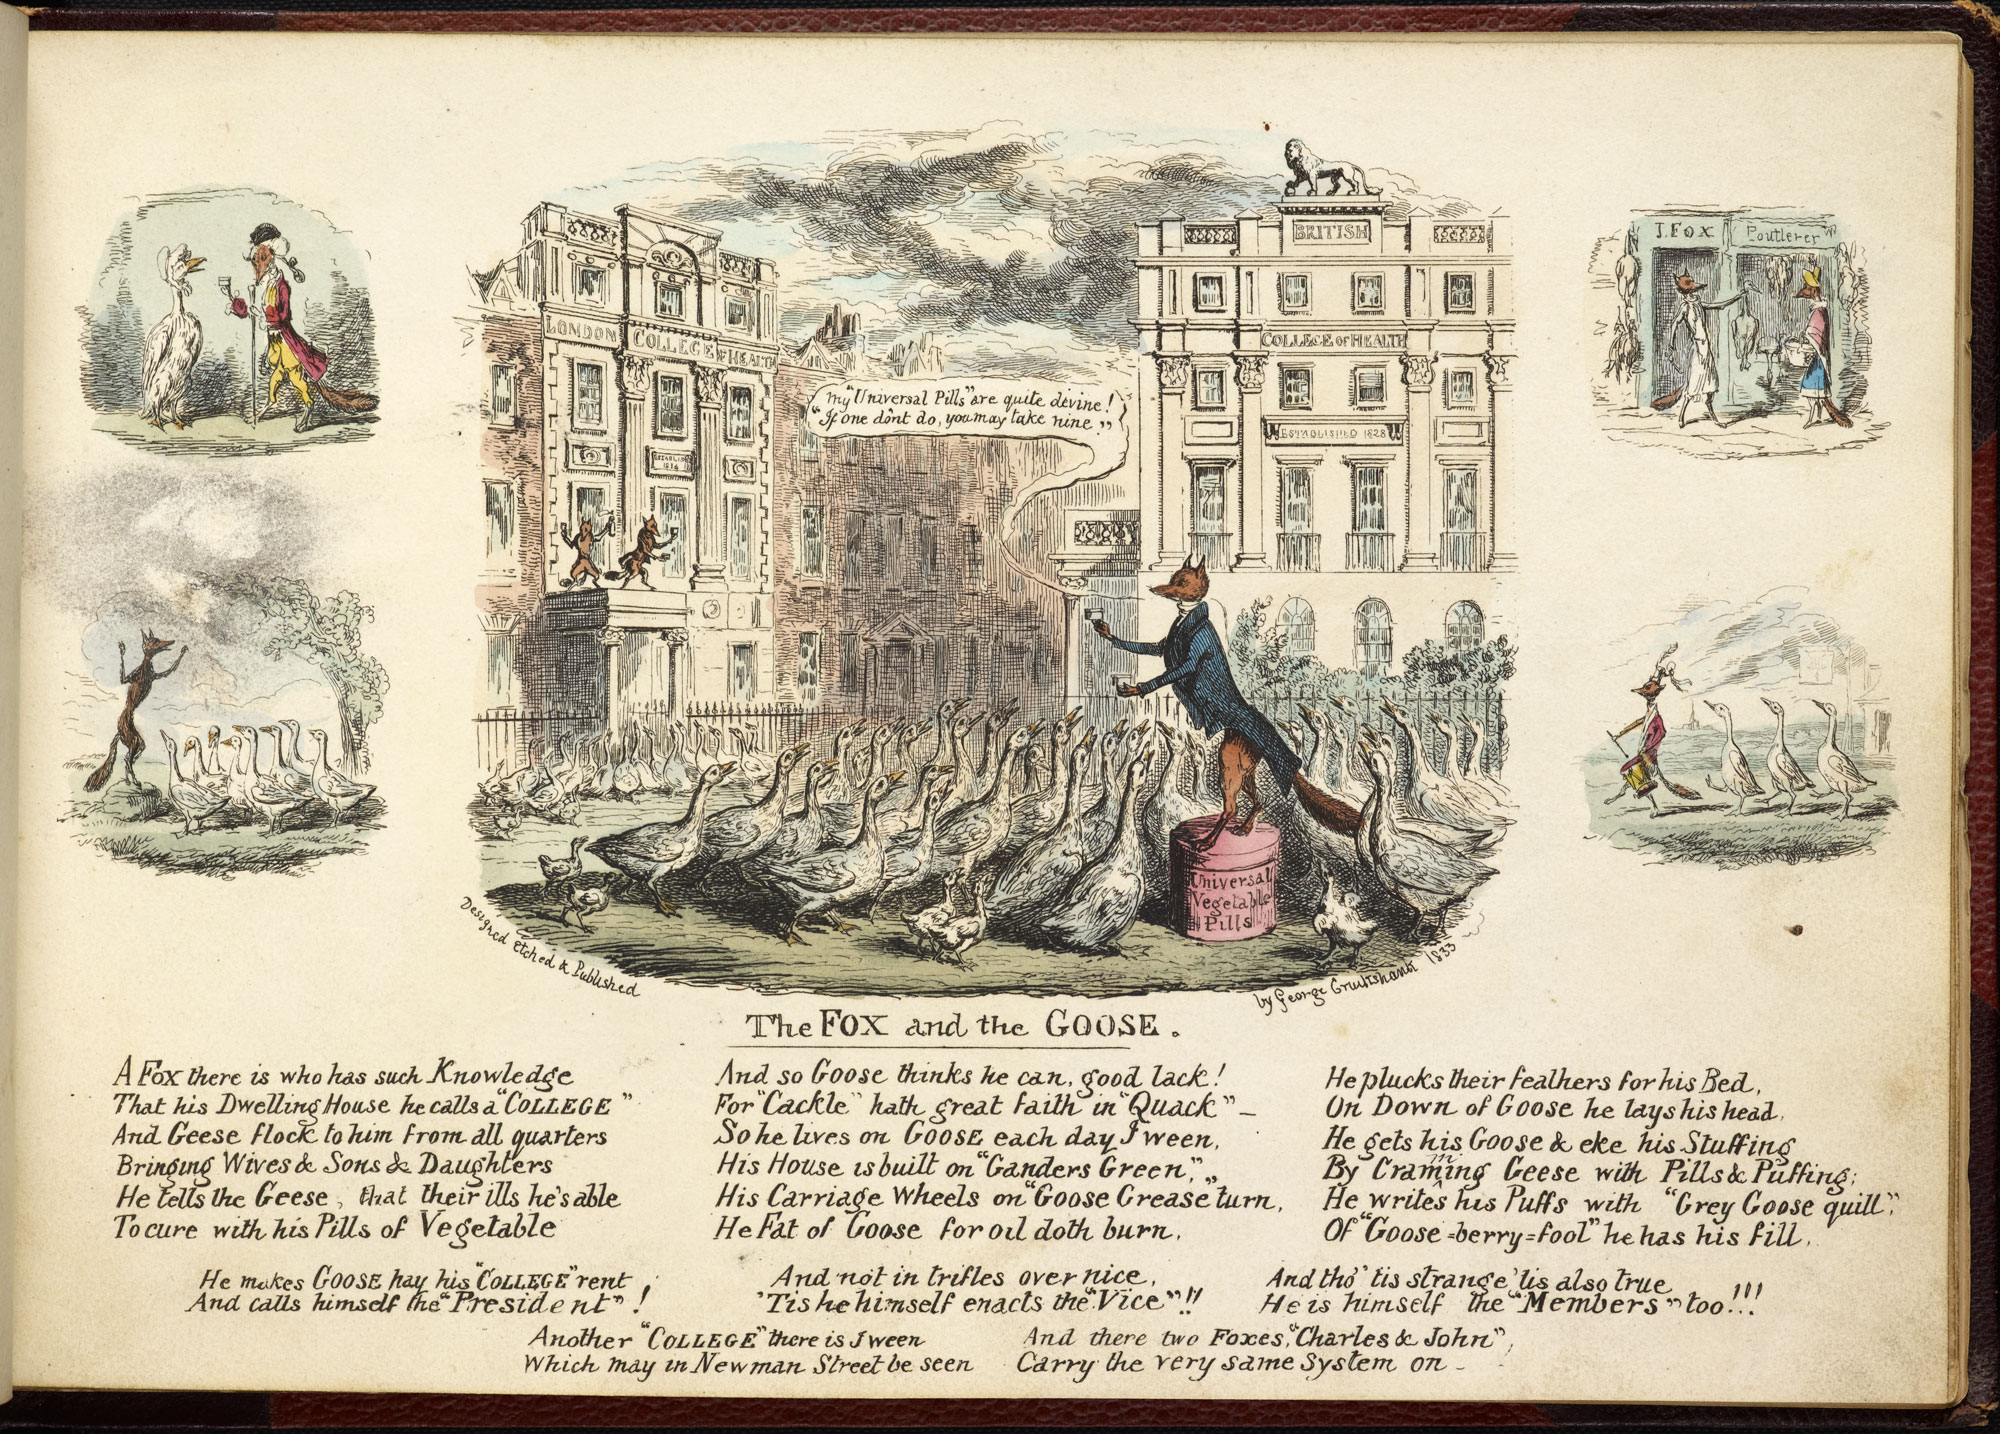 The Fox and the Goose' from My Sketch Book by George Cruikshank [page: ['The Fox and the Goose']]